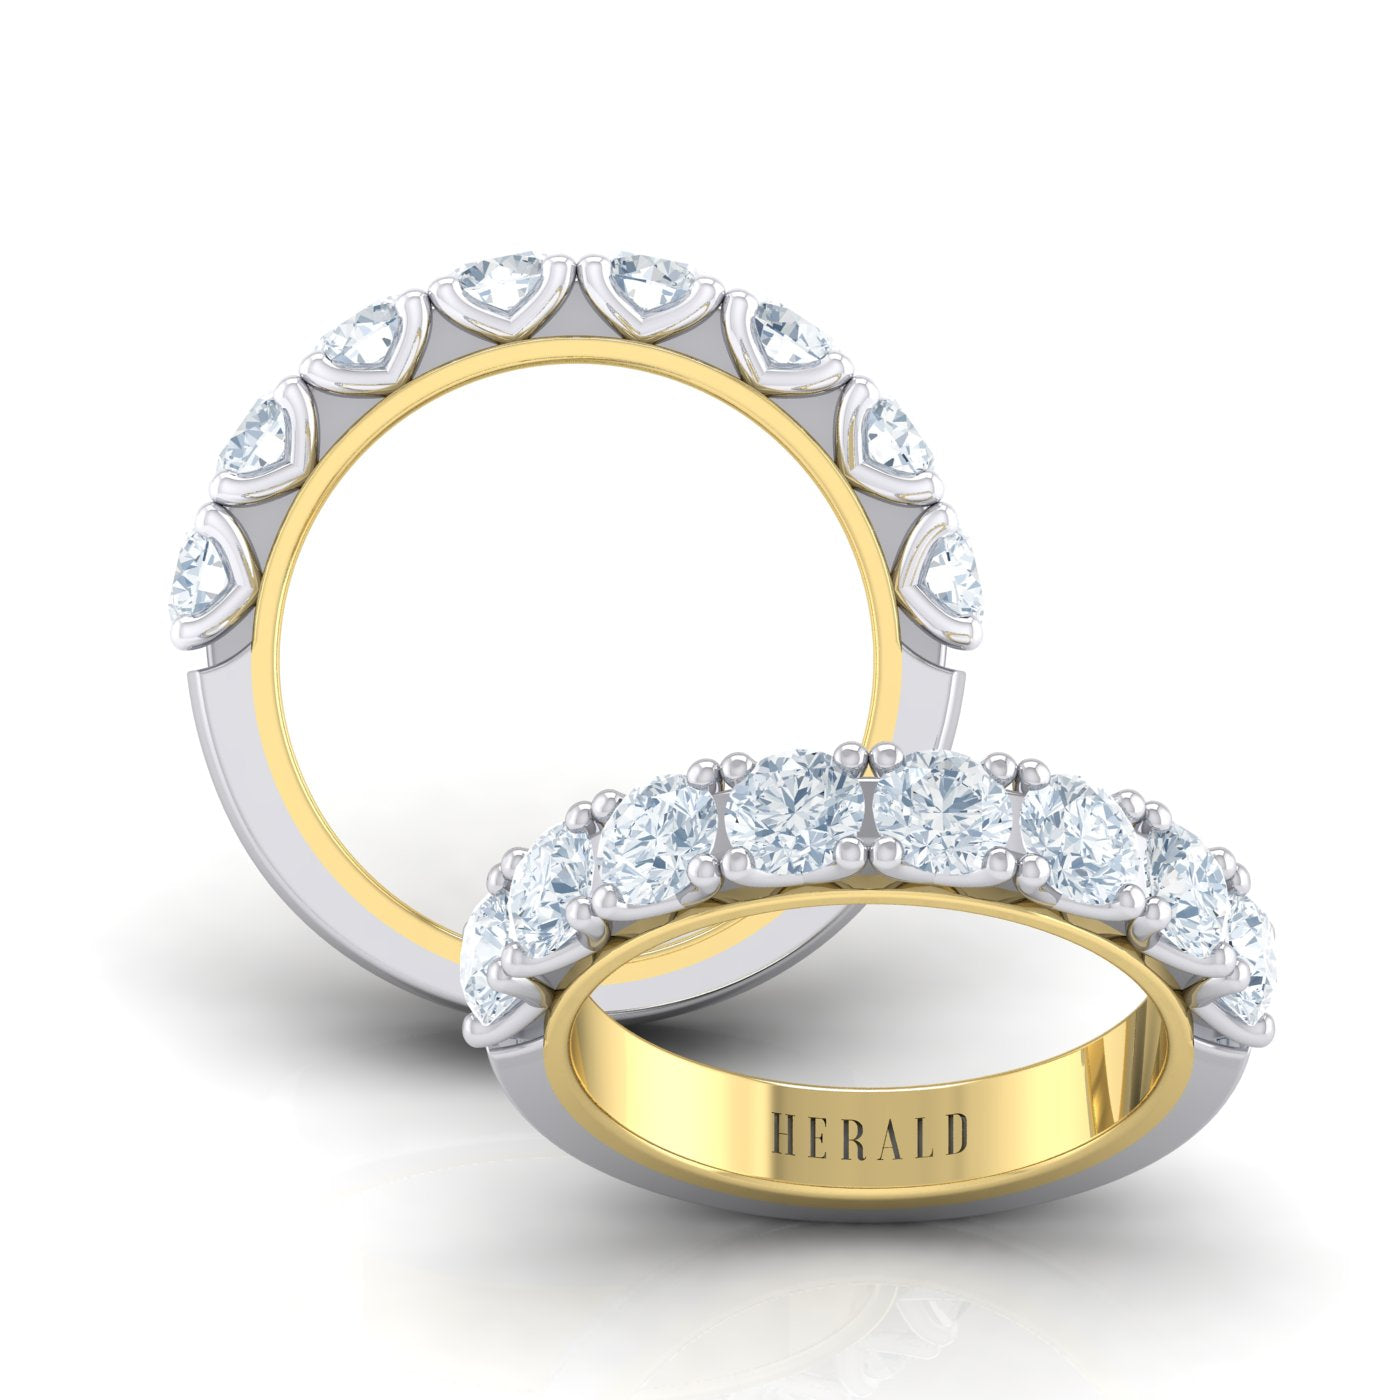 Herald diamond eternity ring in 18kt gold